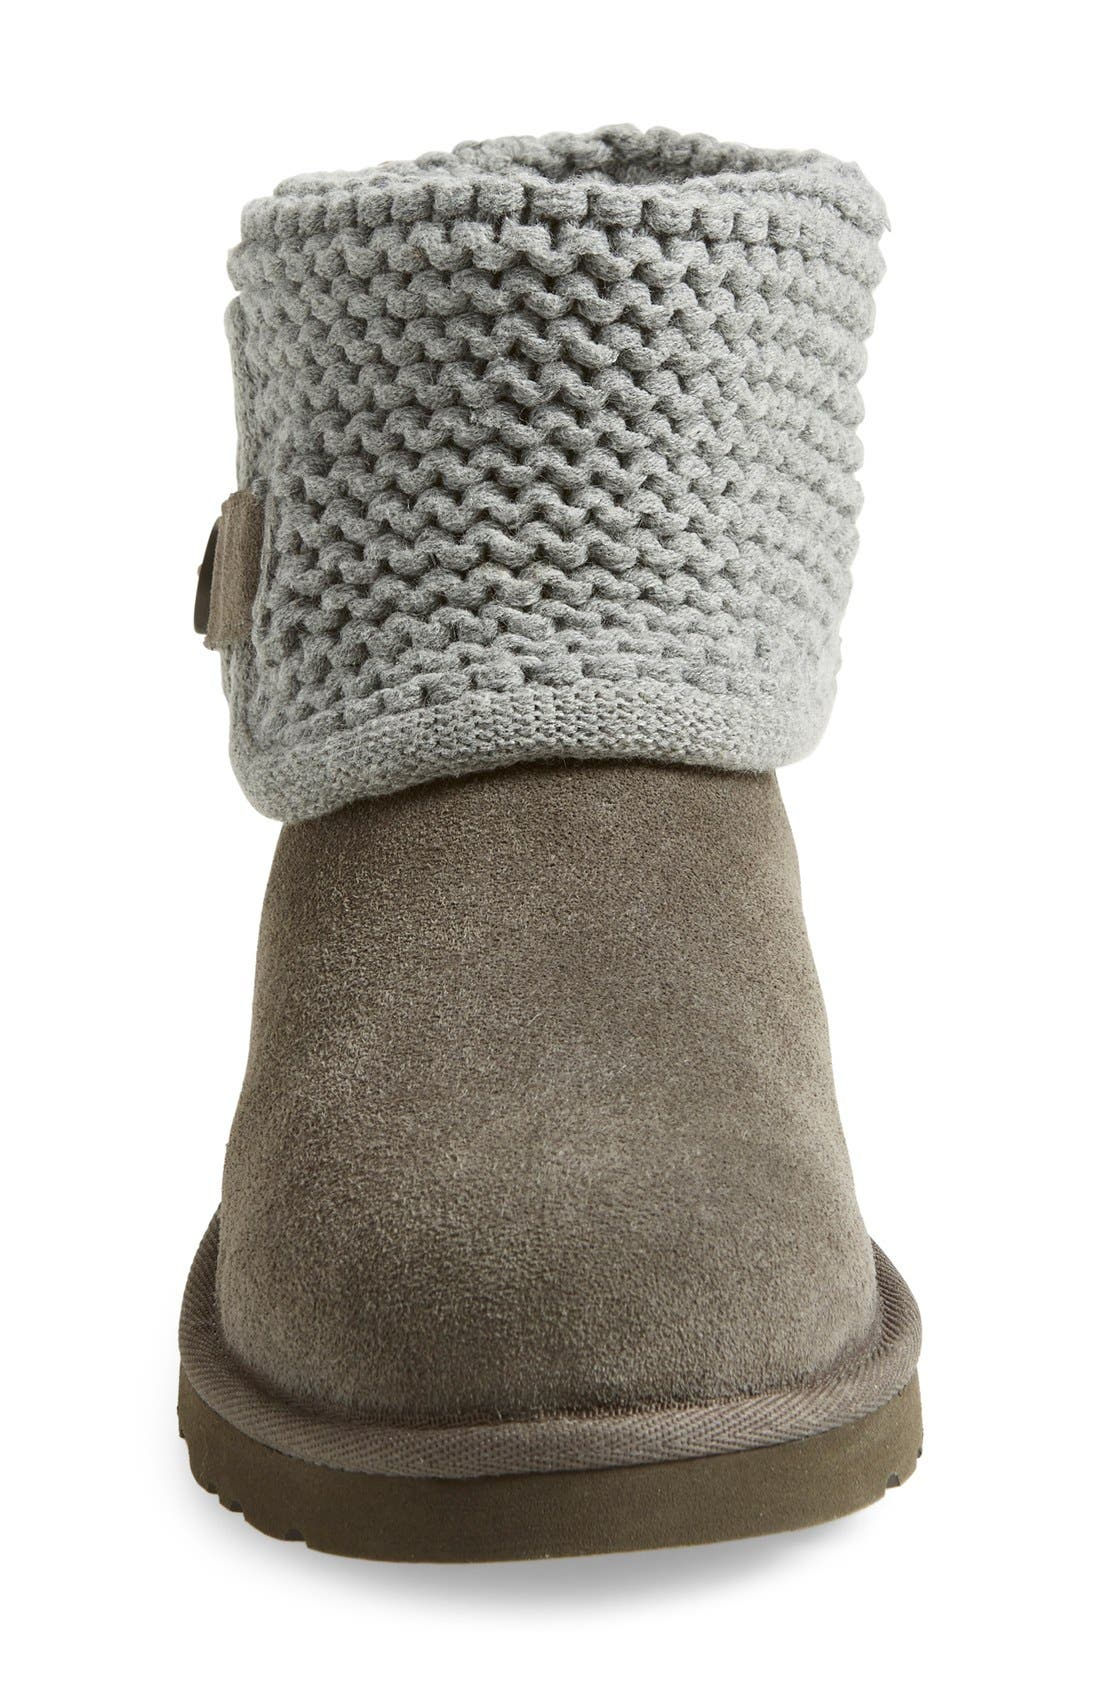 Alternate Image 3  - UGG® Darrah Purl Knit Cuff Boot (Little Kid & Big Kid)